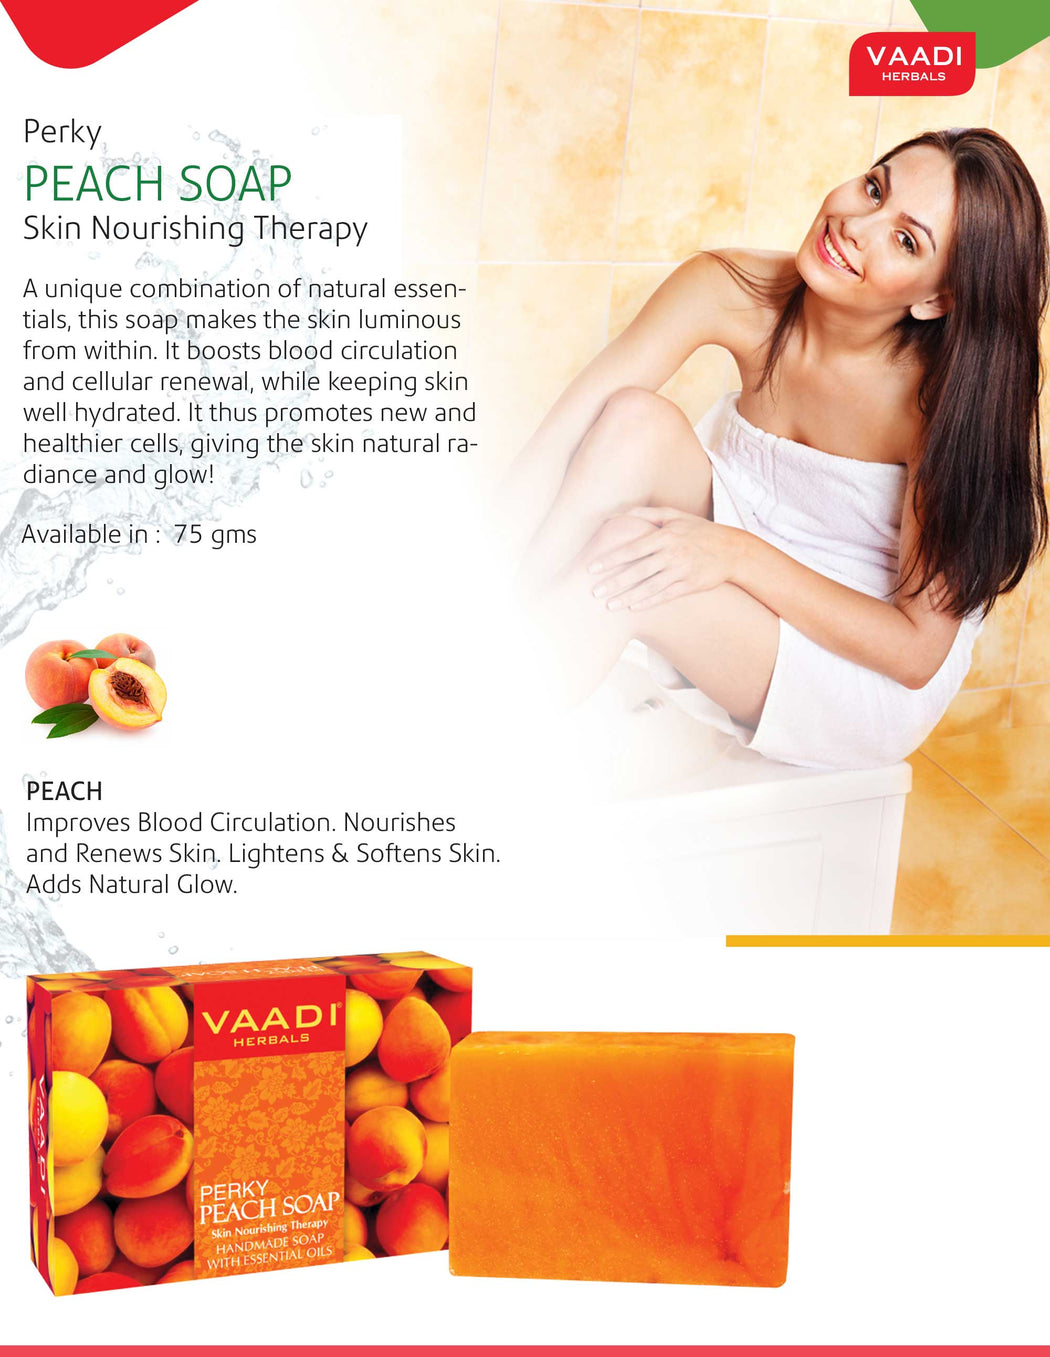 Organic Perky Peach Soap with Almond Oil - Skin Nourishing - Rehydrates (12 x 75 gms / 2.7 oz)